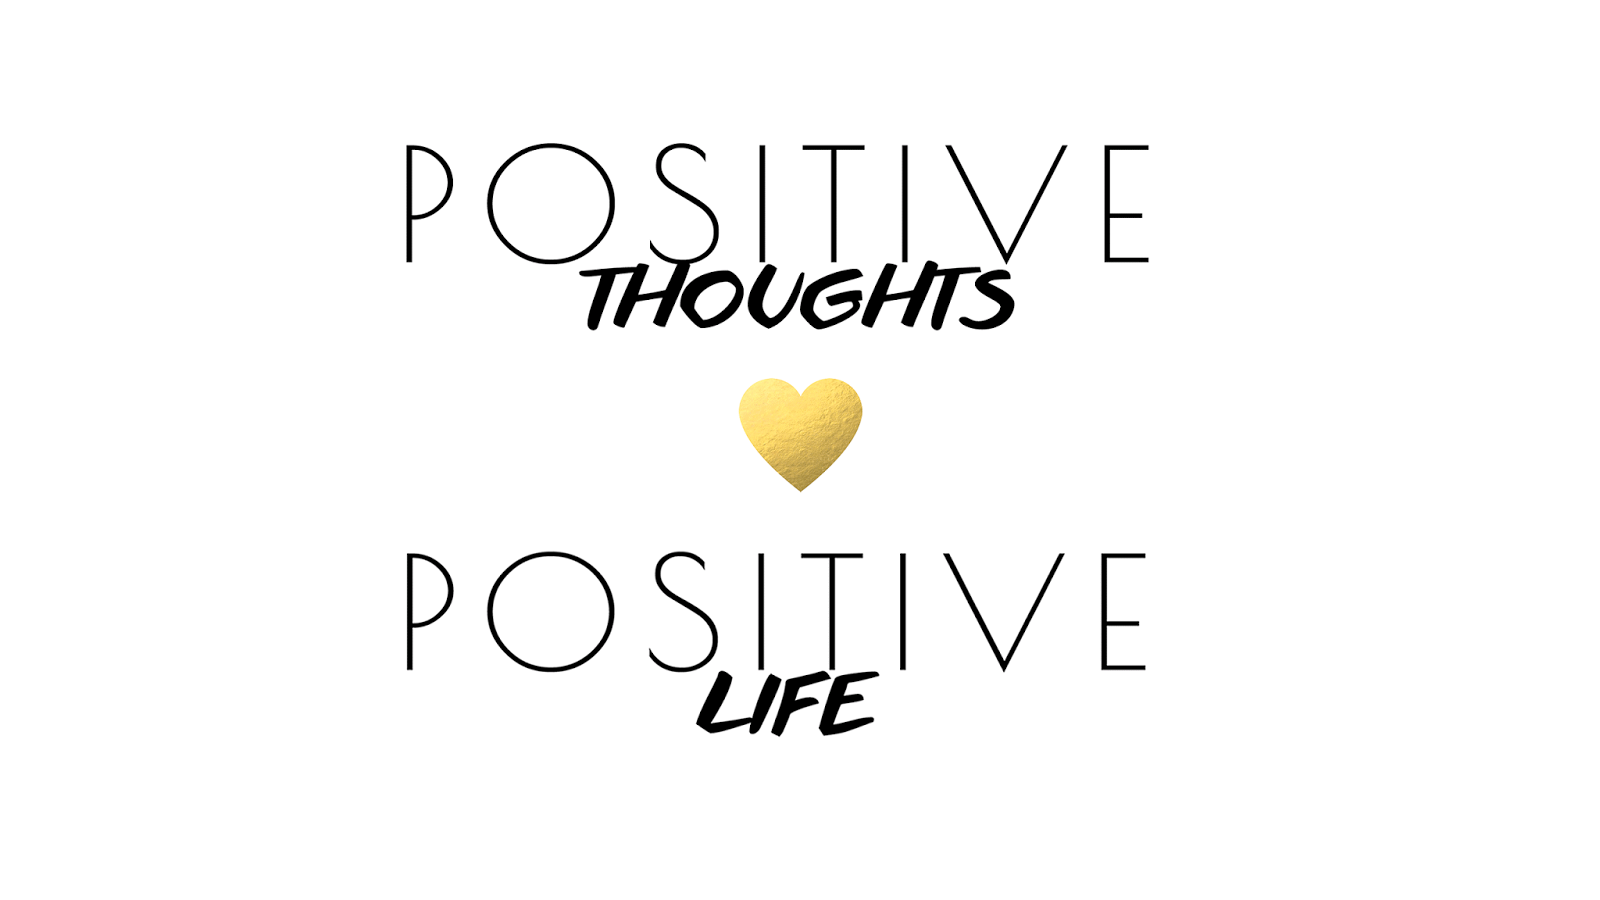 Gld Quote Black White Gld Mini Heart Positive Thoughts Life Desktop Wallpaper